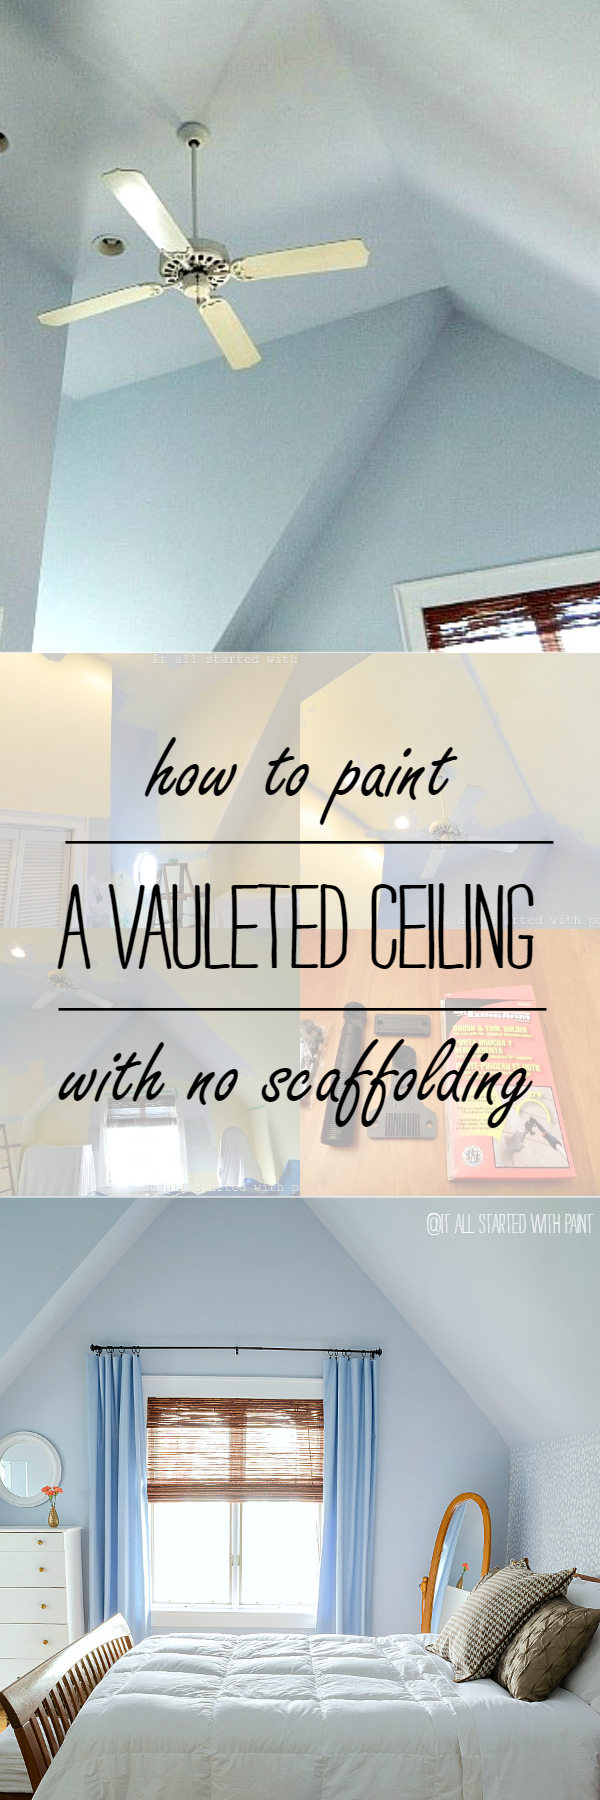 Paint A Vaulted Ceiling With No Scaffolding Needed